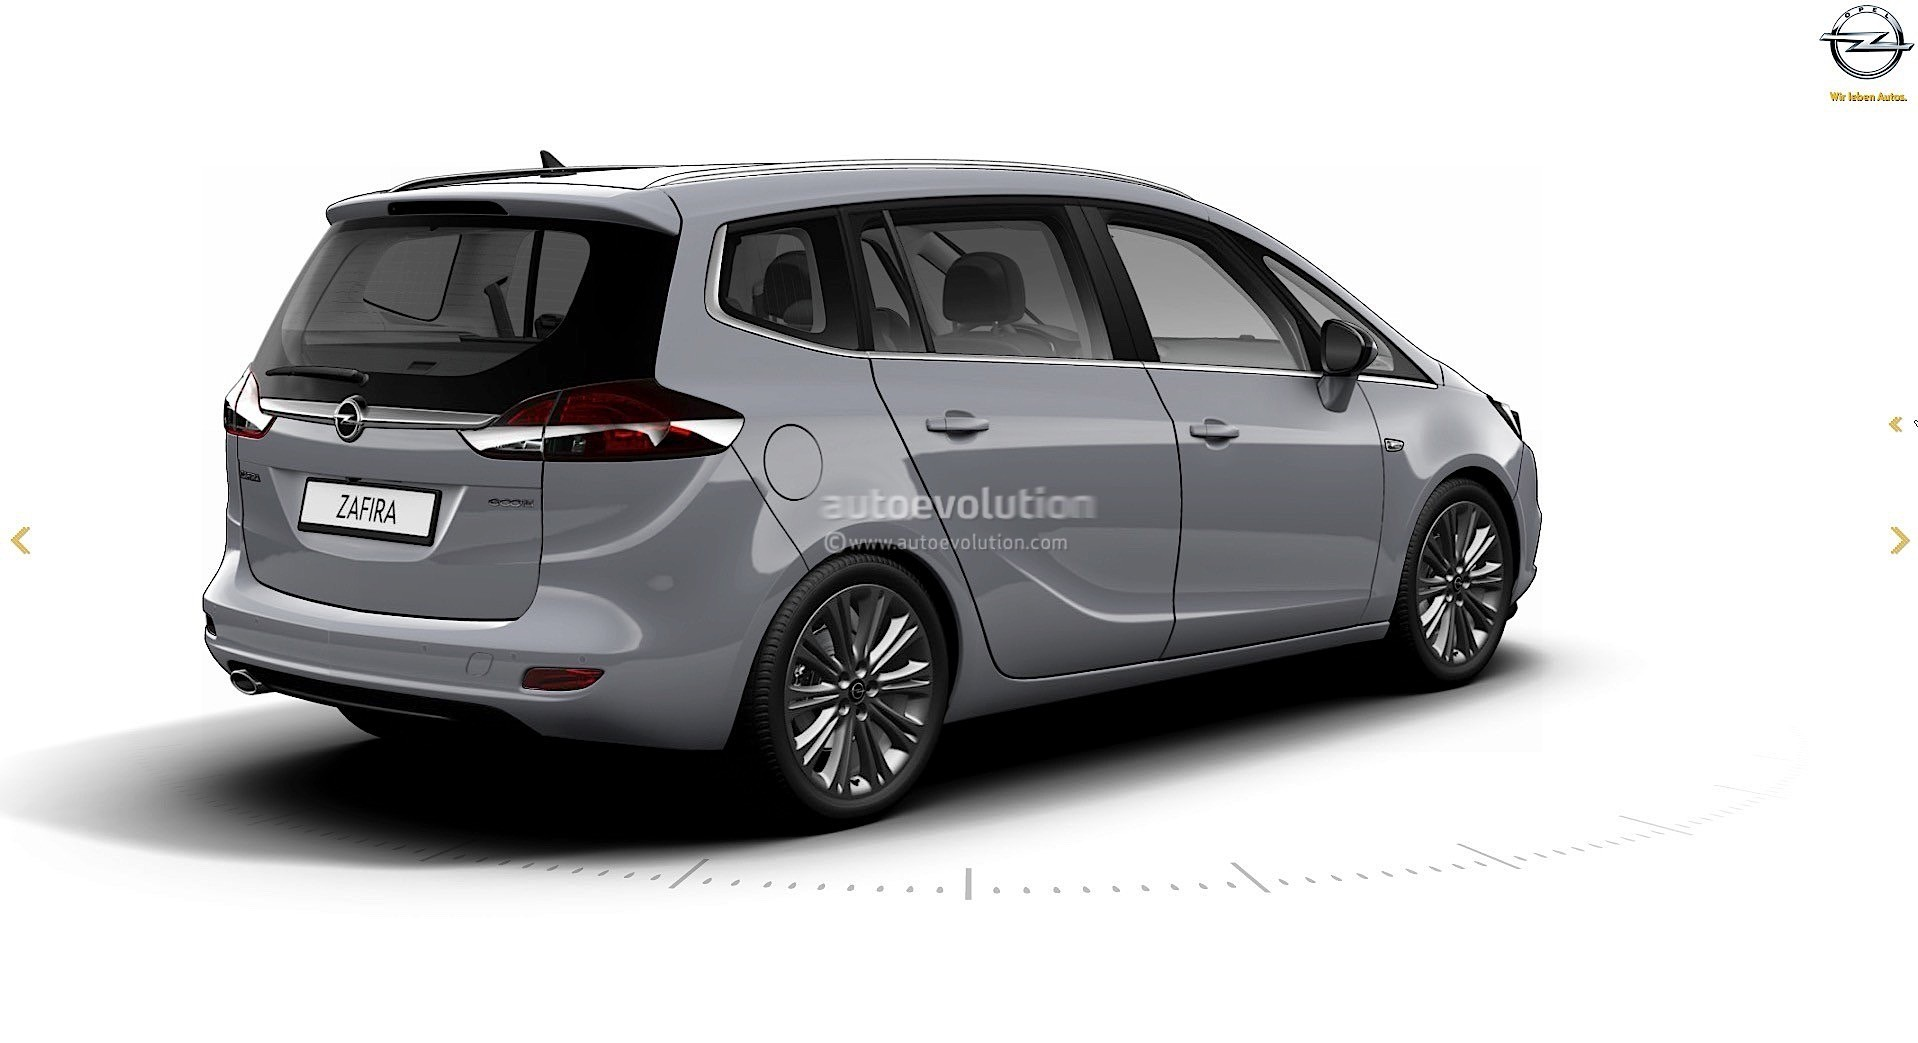 2017 opel zafira facelift leaked on gm website here are. Black Bedroom Furniture Sets. Home Design Ideas